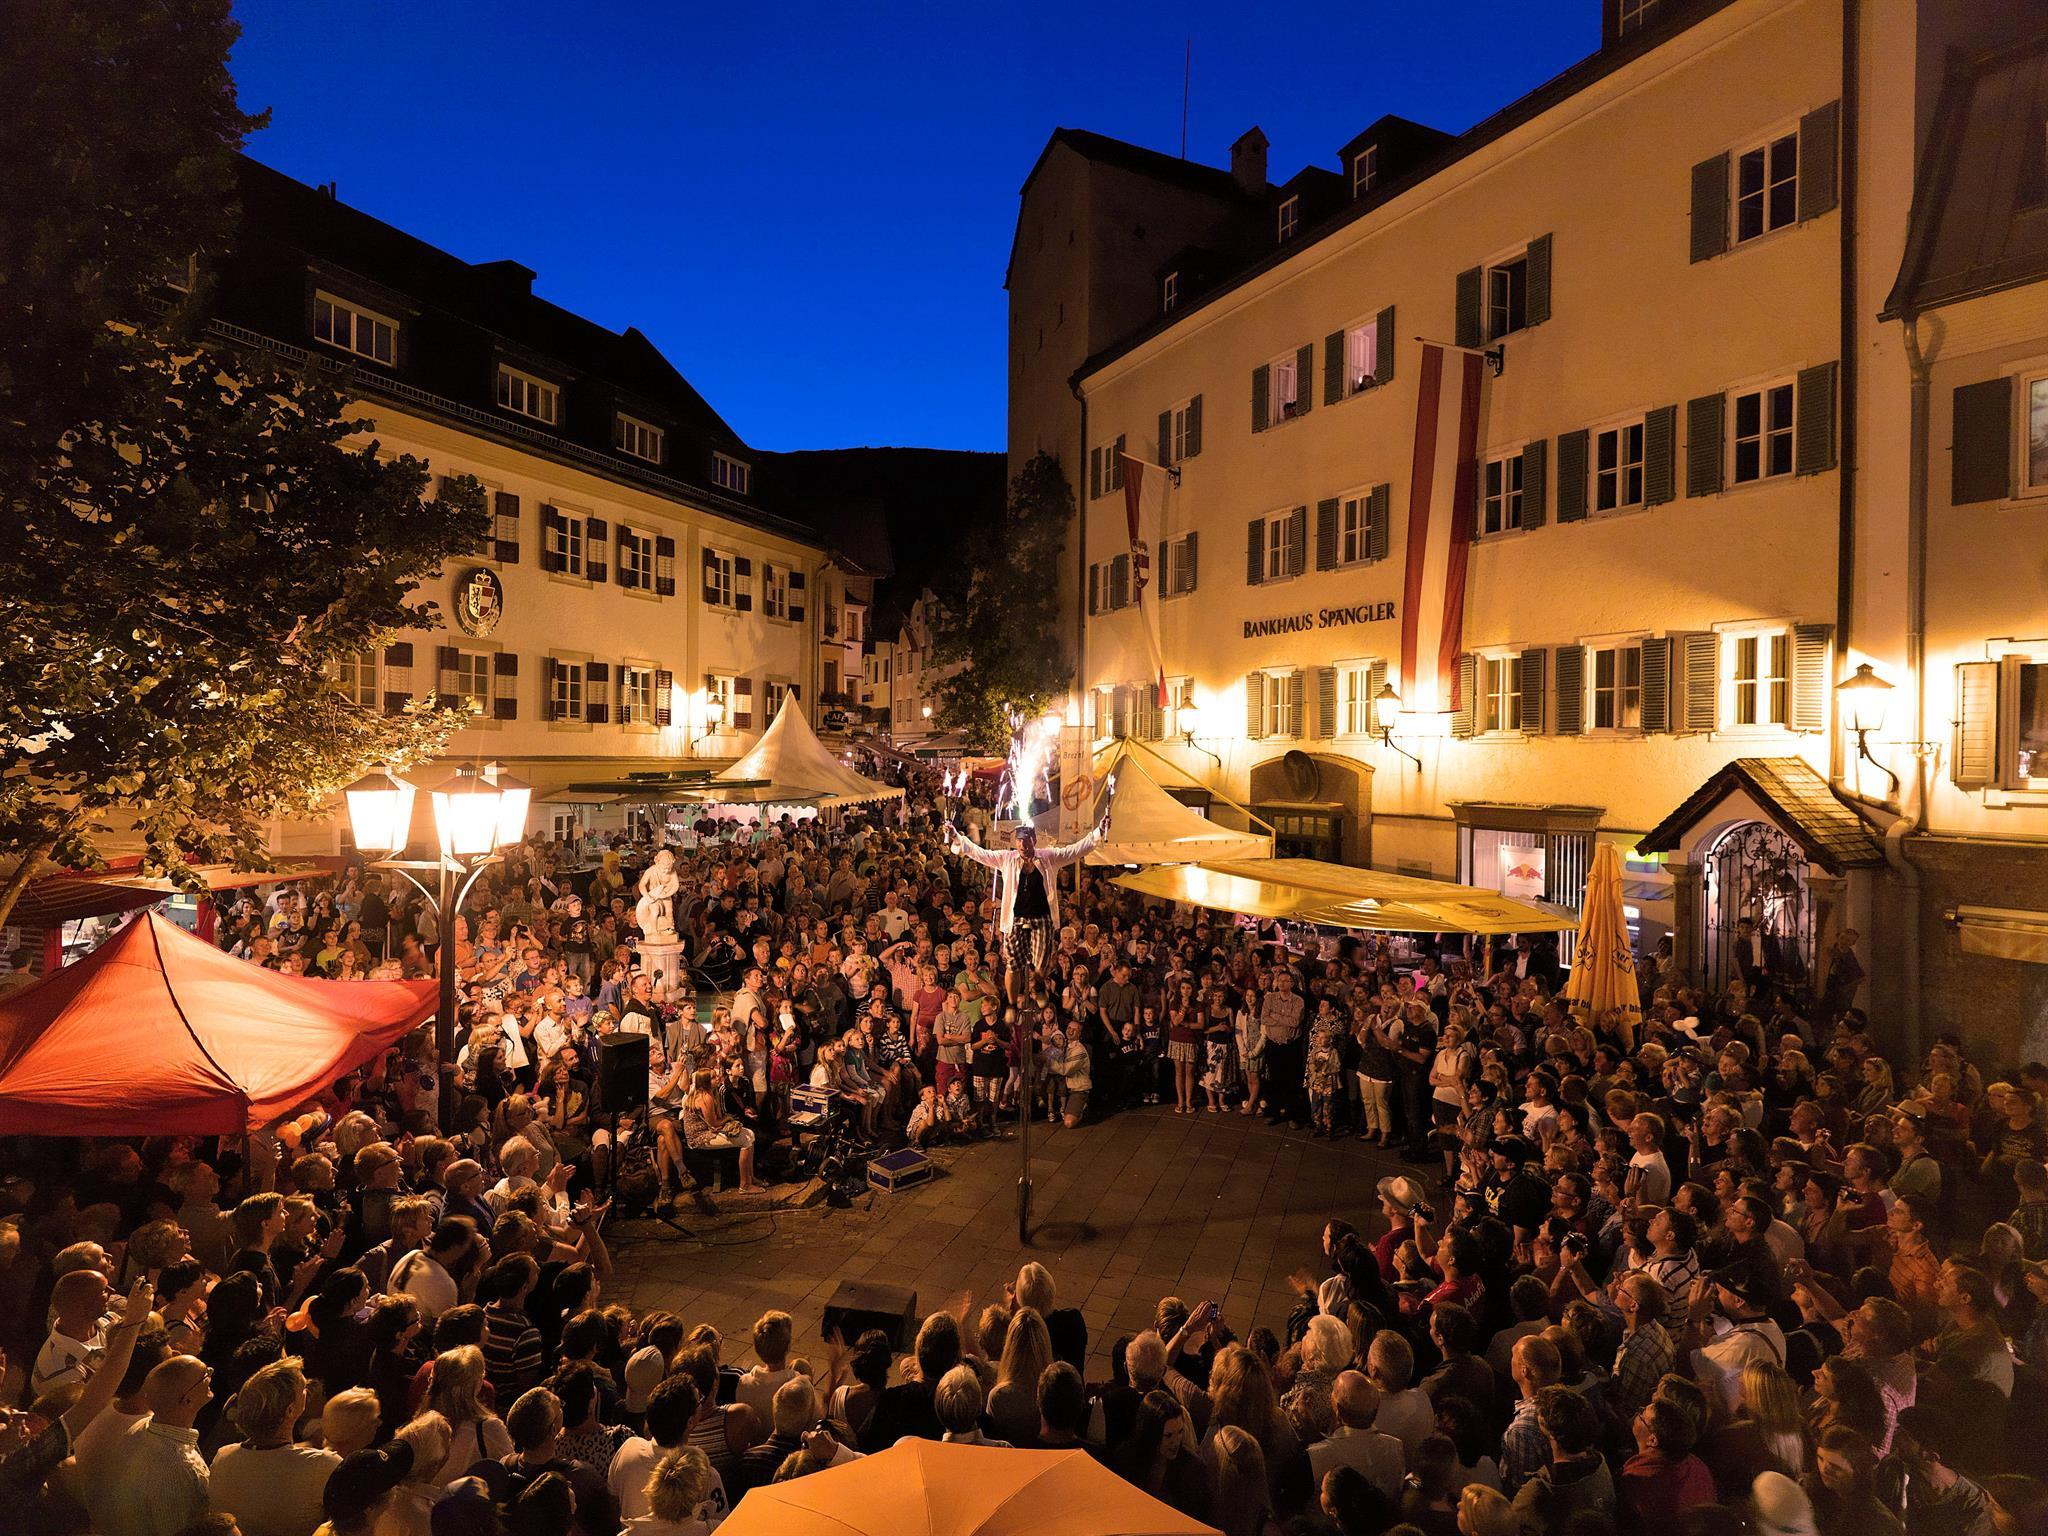 Zell SummerNightFestival - 03/07/2019, from 7:00 PM